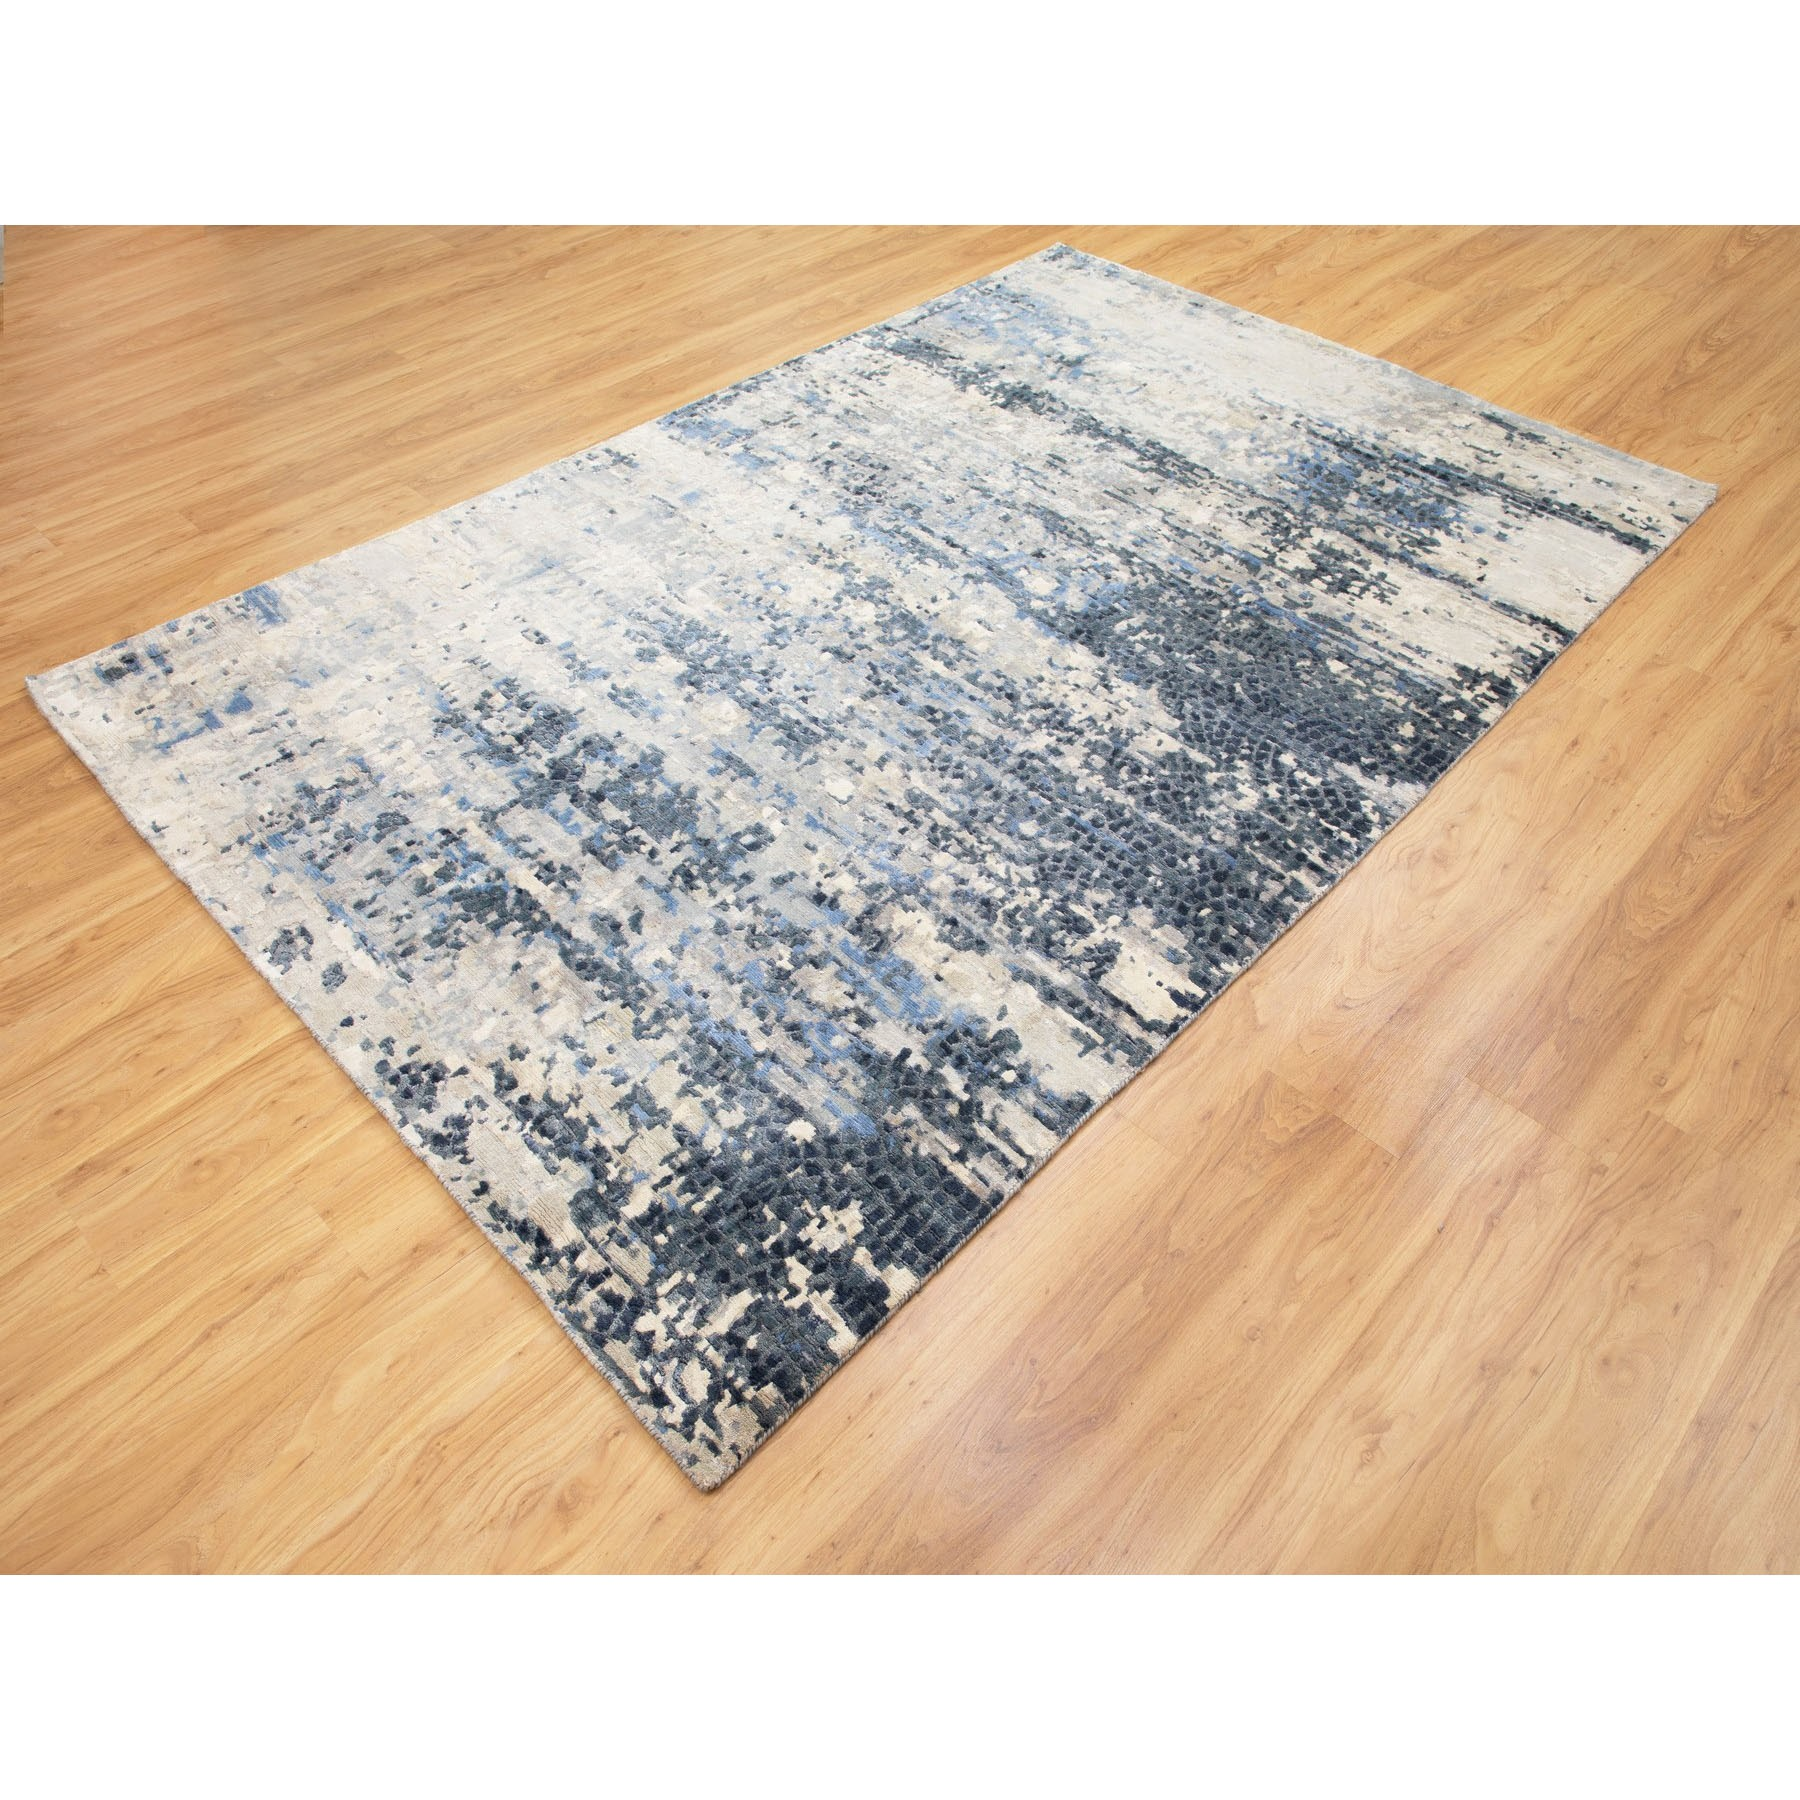 "6'x9'3"" Abstract With Mosaic Design Wool And Silk Hand Knotted Oriental Rug"